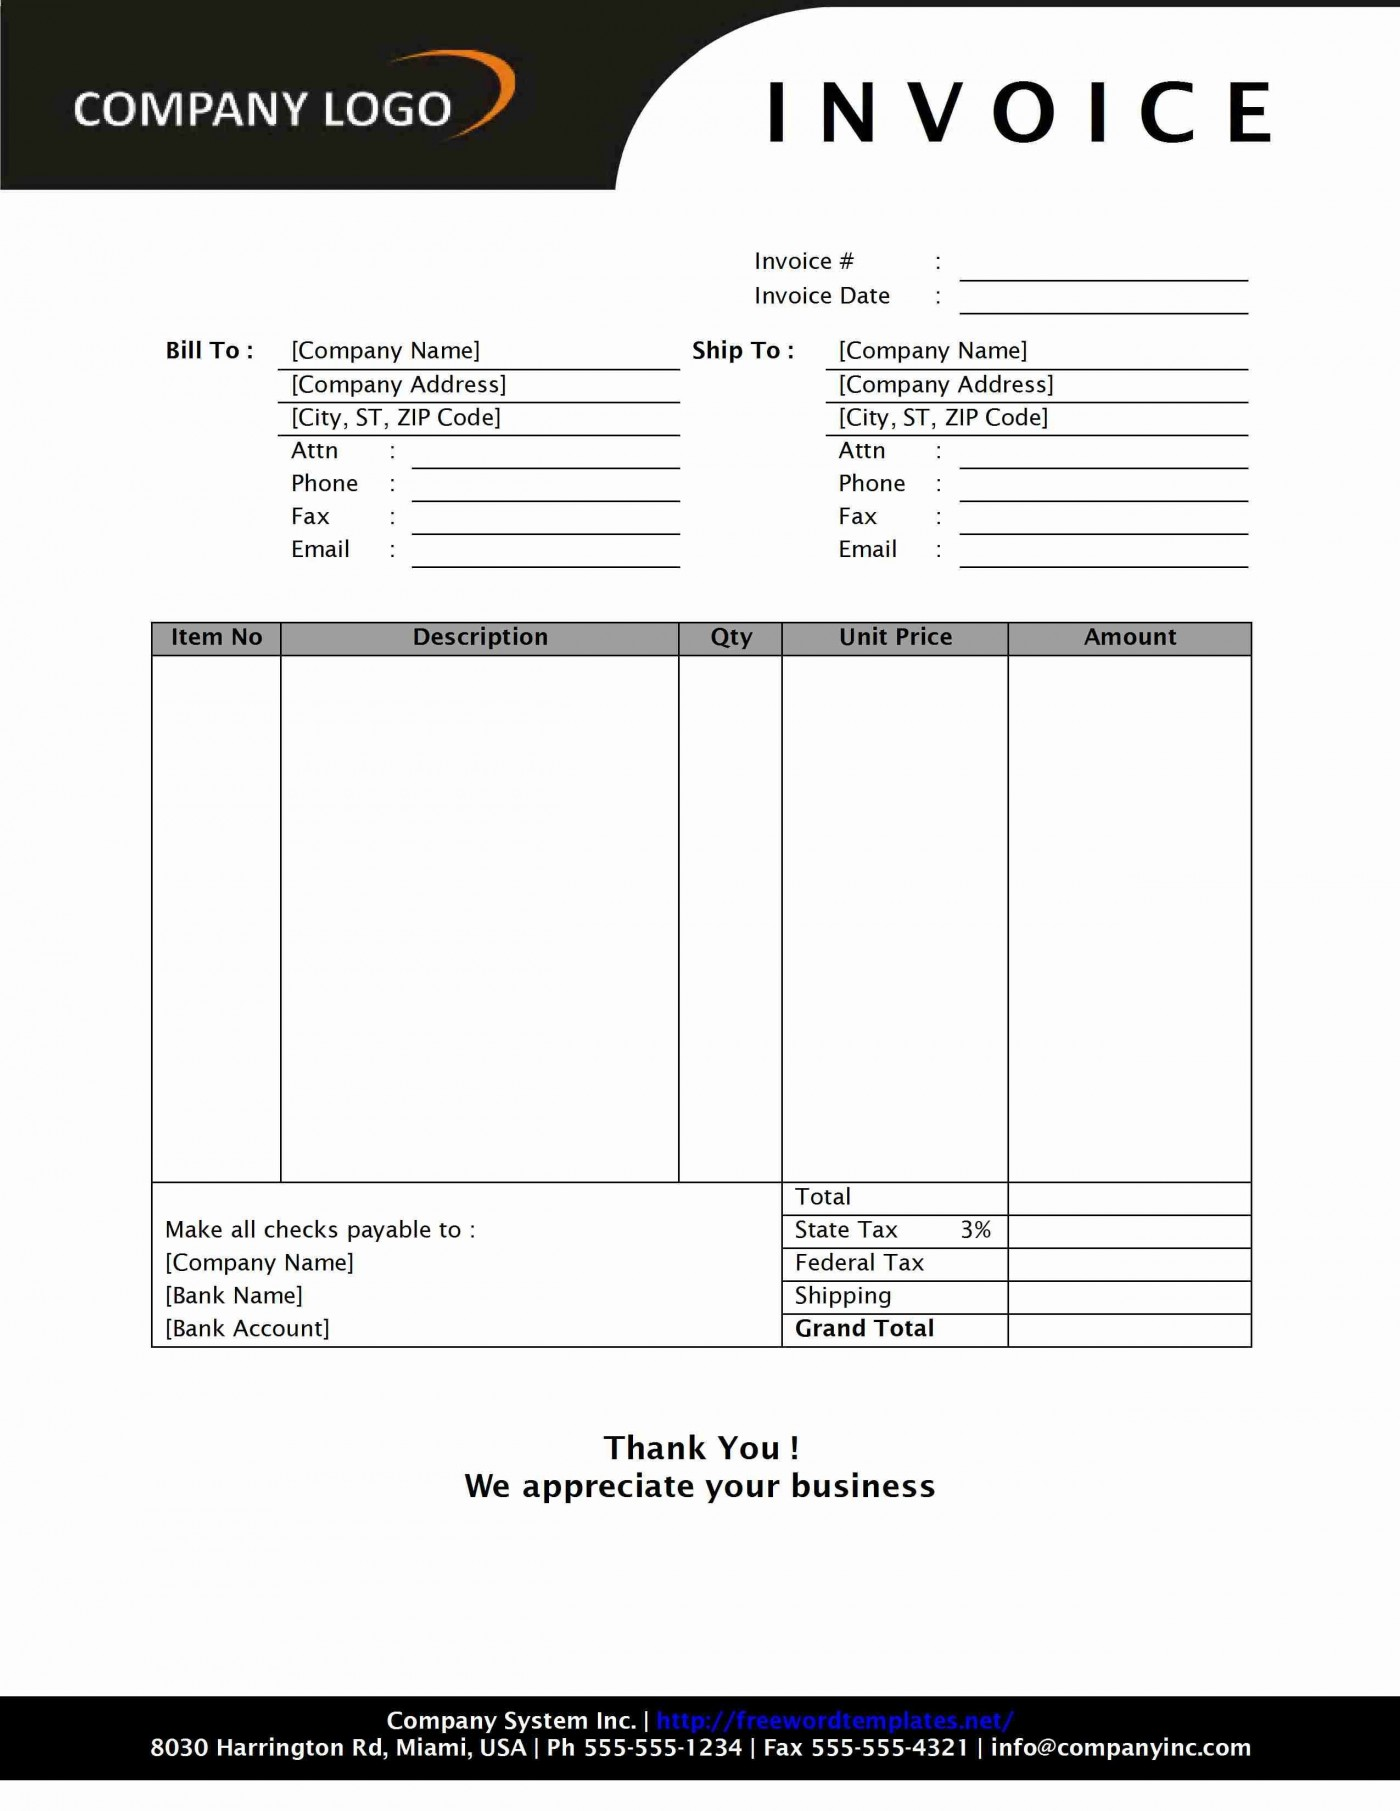 002 Archaicawful Invoice Template Free Download High Resolution  Excel Service Word Format Gst Html1400